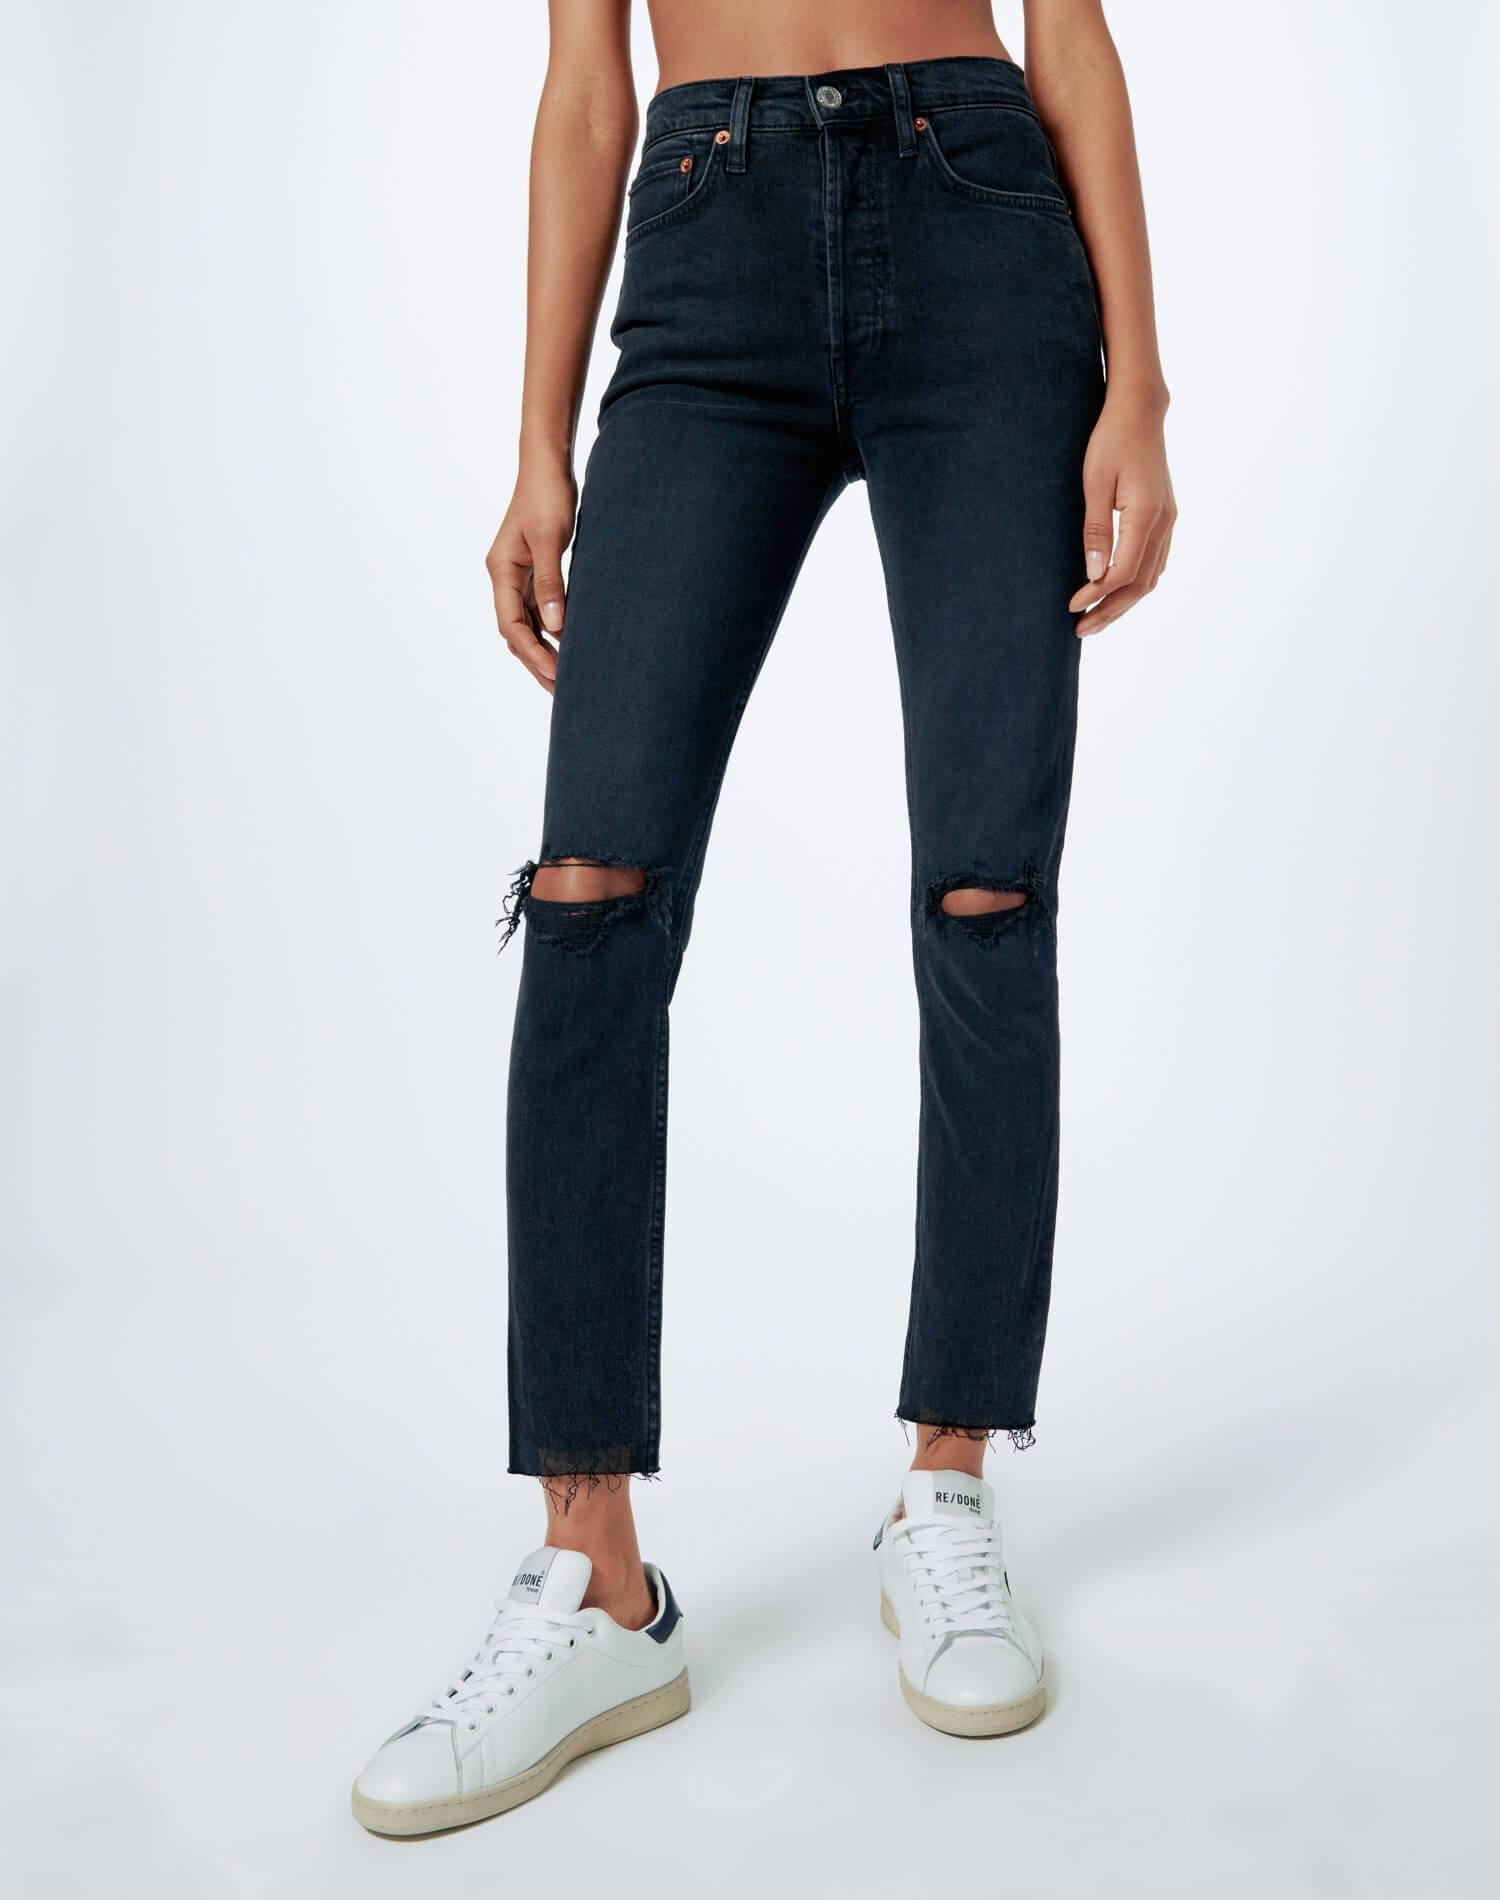 Comfort Stretch High Rise Ankle Crop - Faded Black Destroy